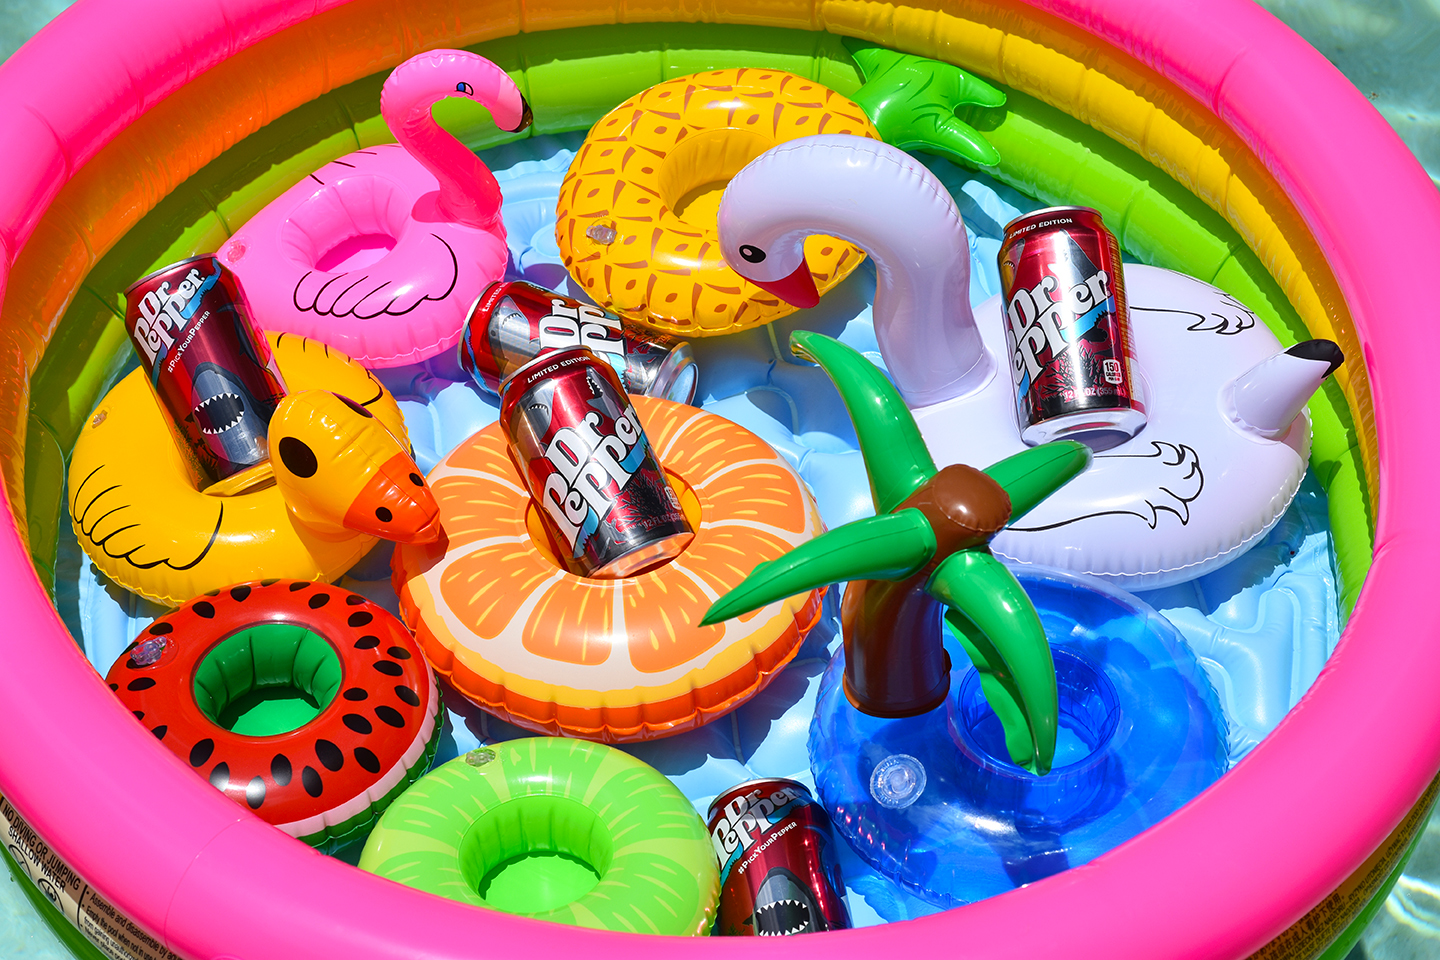 Pool Party Inspiration, Pool party ideas for adults, backyard pool party ideas for adults, pool party for adults ideas